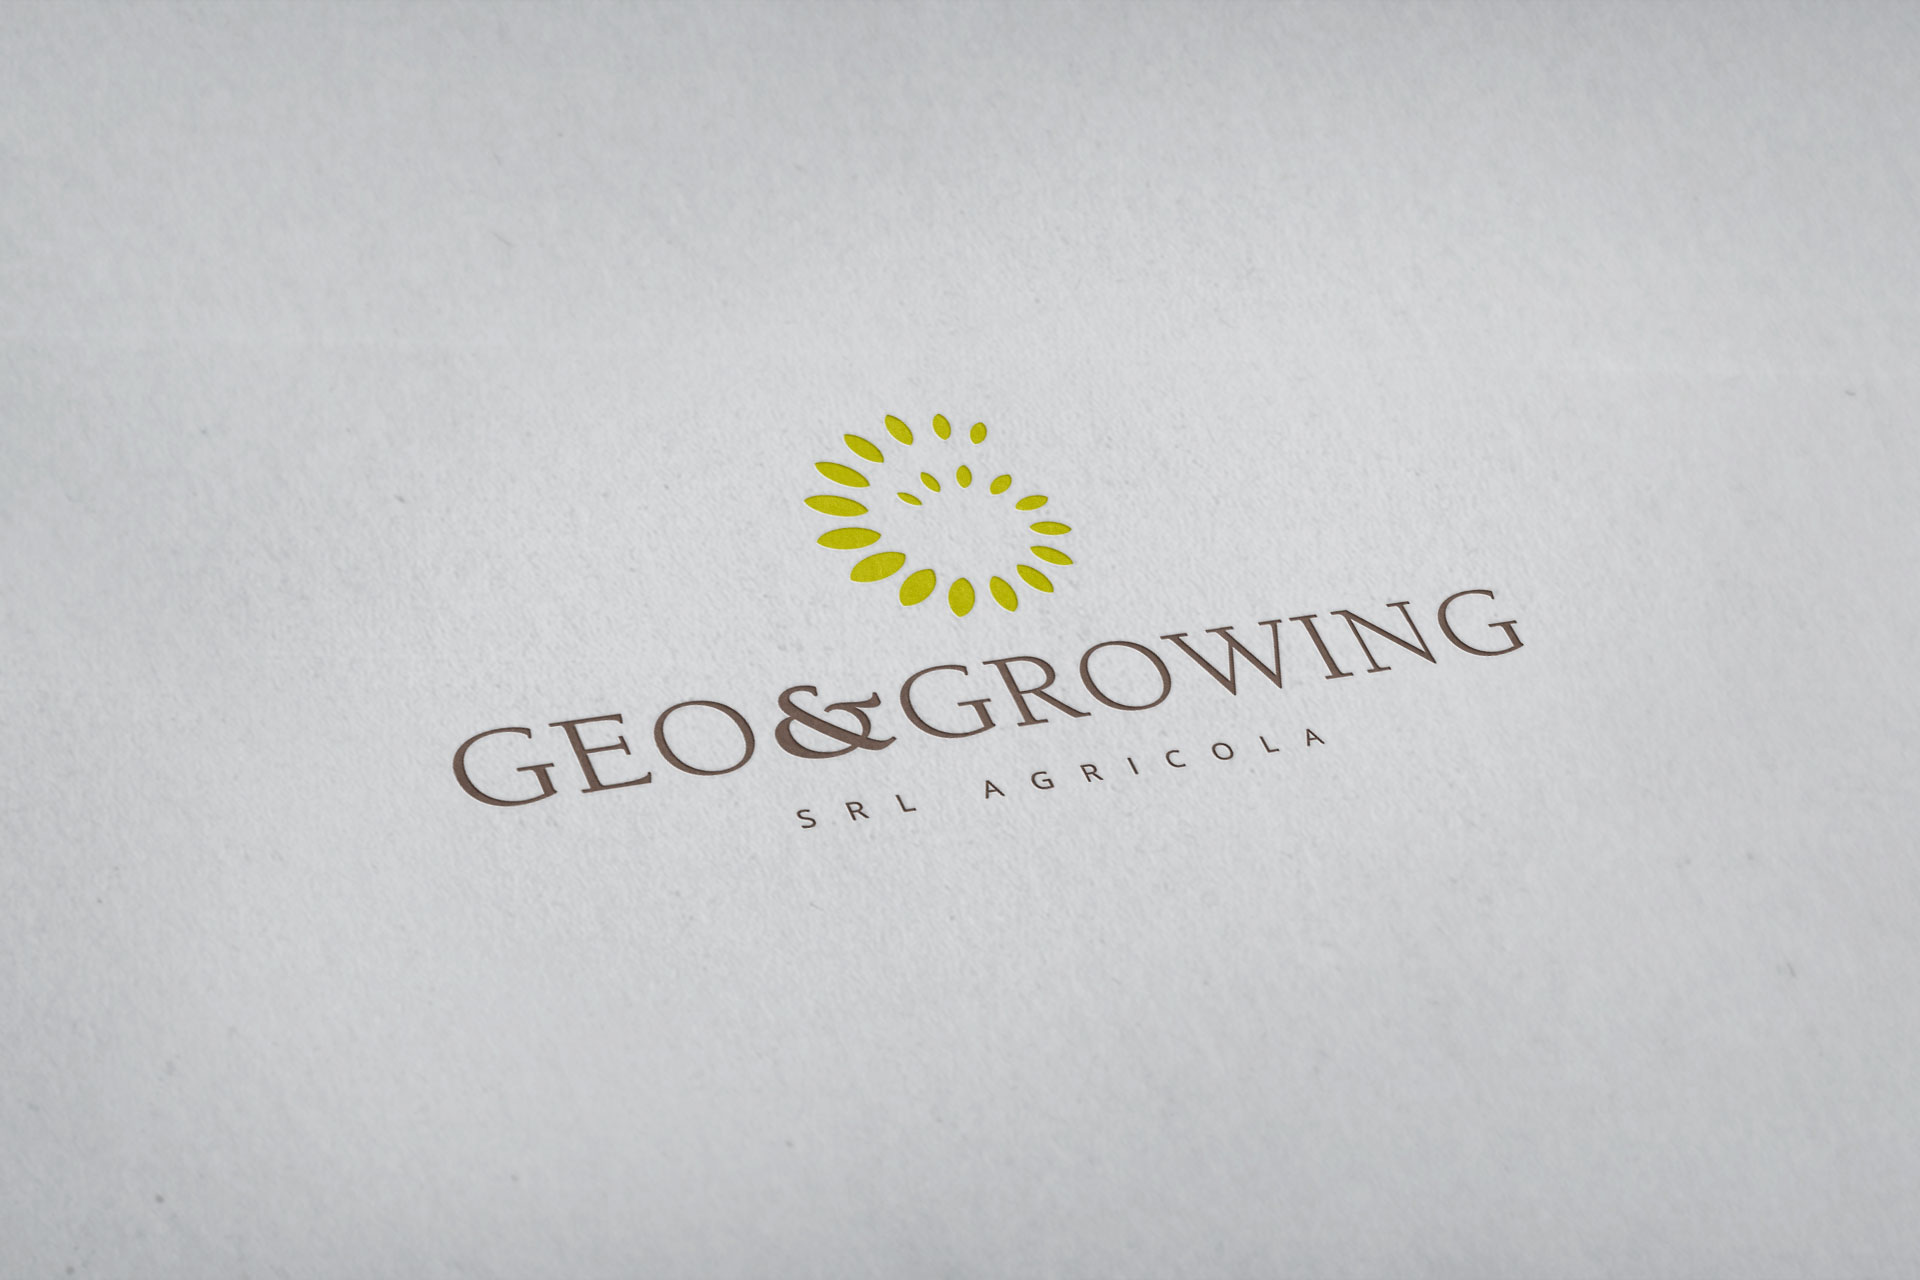 Geo&Growing